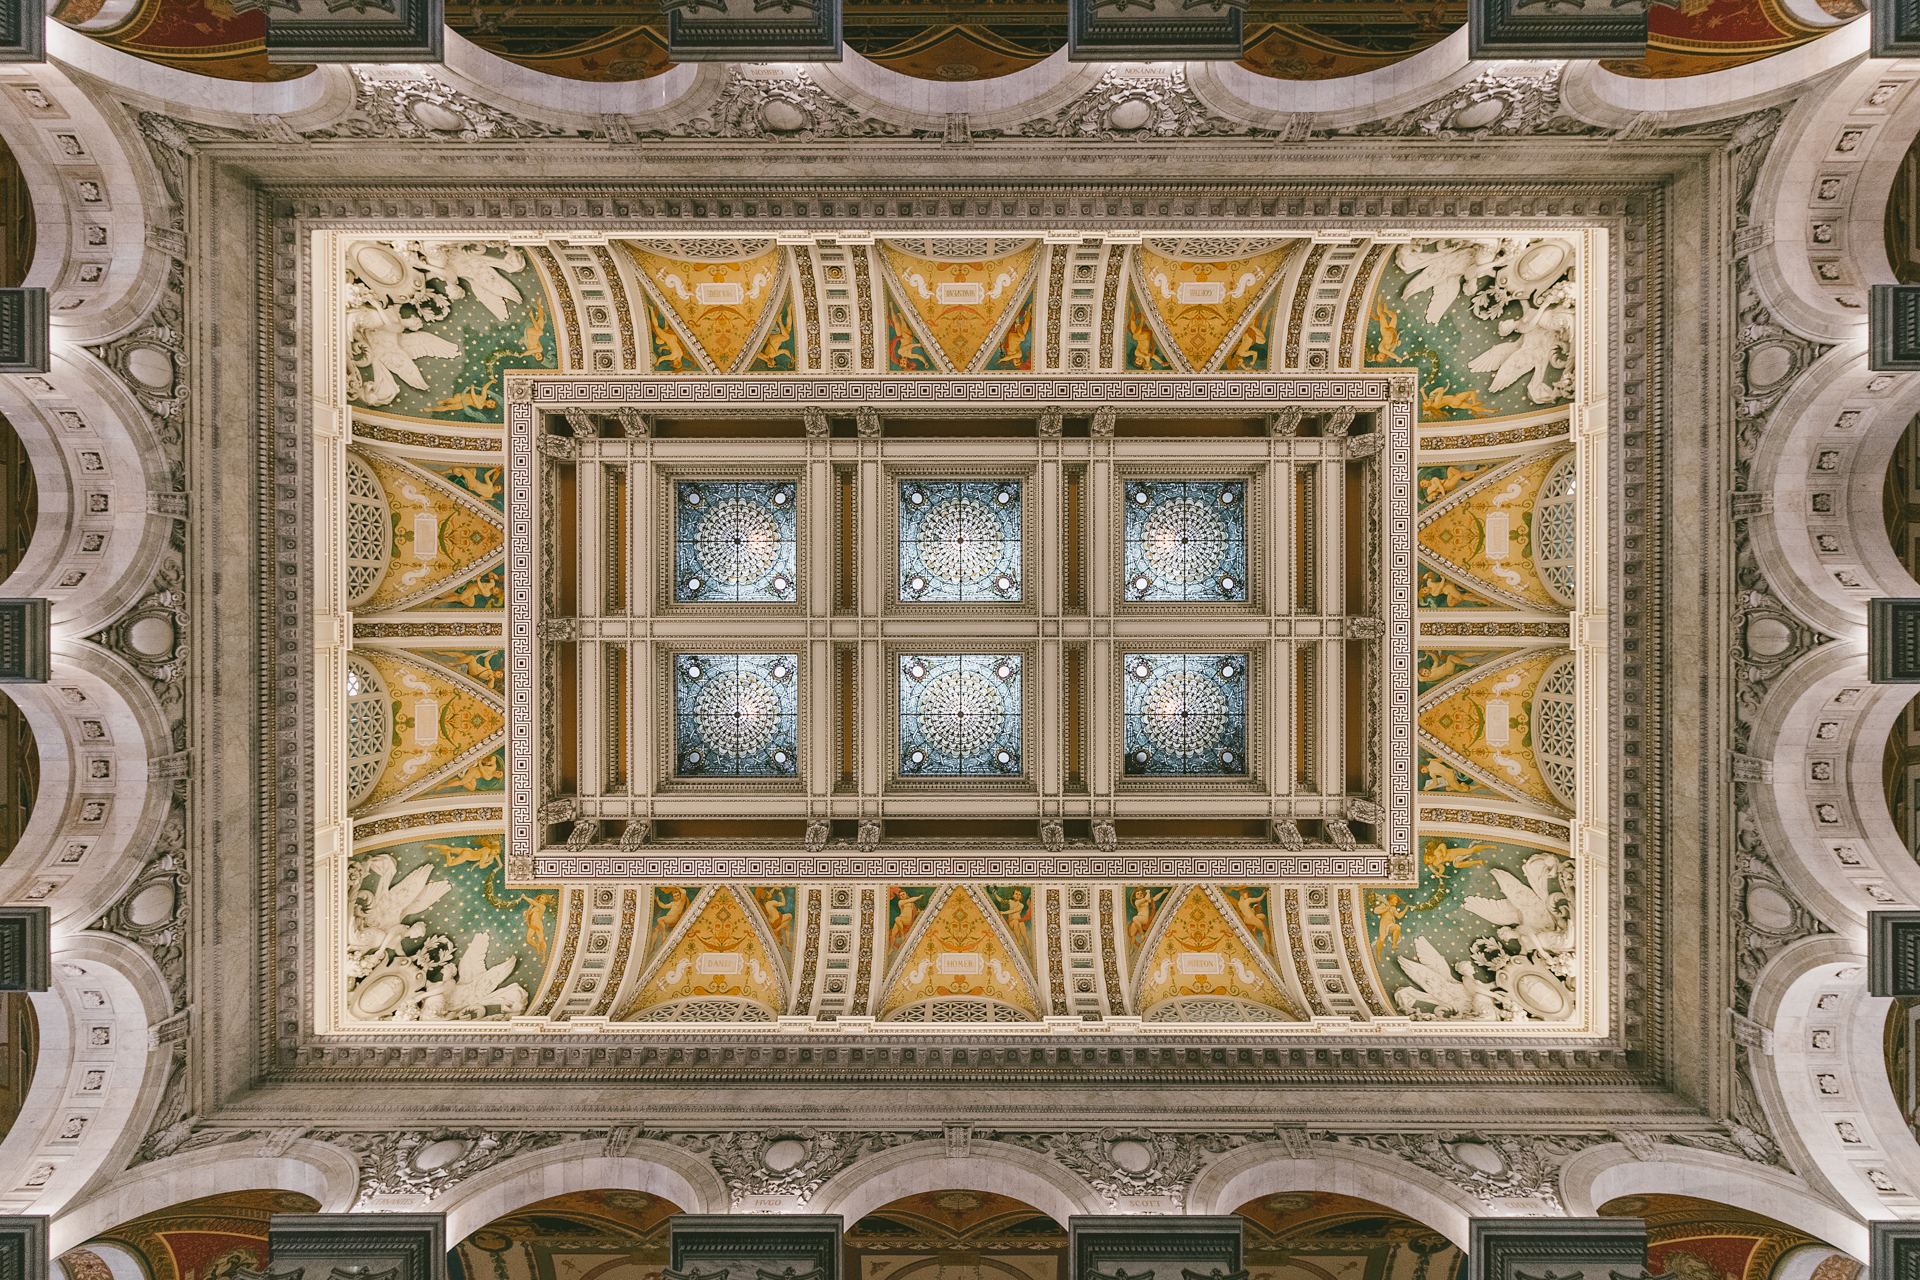 Ornate Ceiling – Interior ceiling of the Library of Congress(Image: Zack Lewkowicz)<p></p>